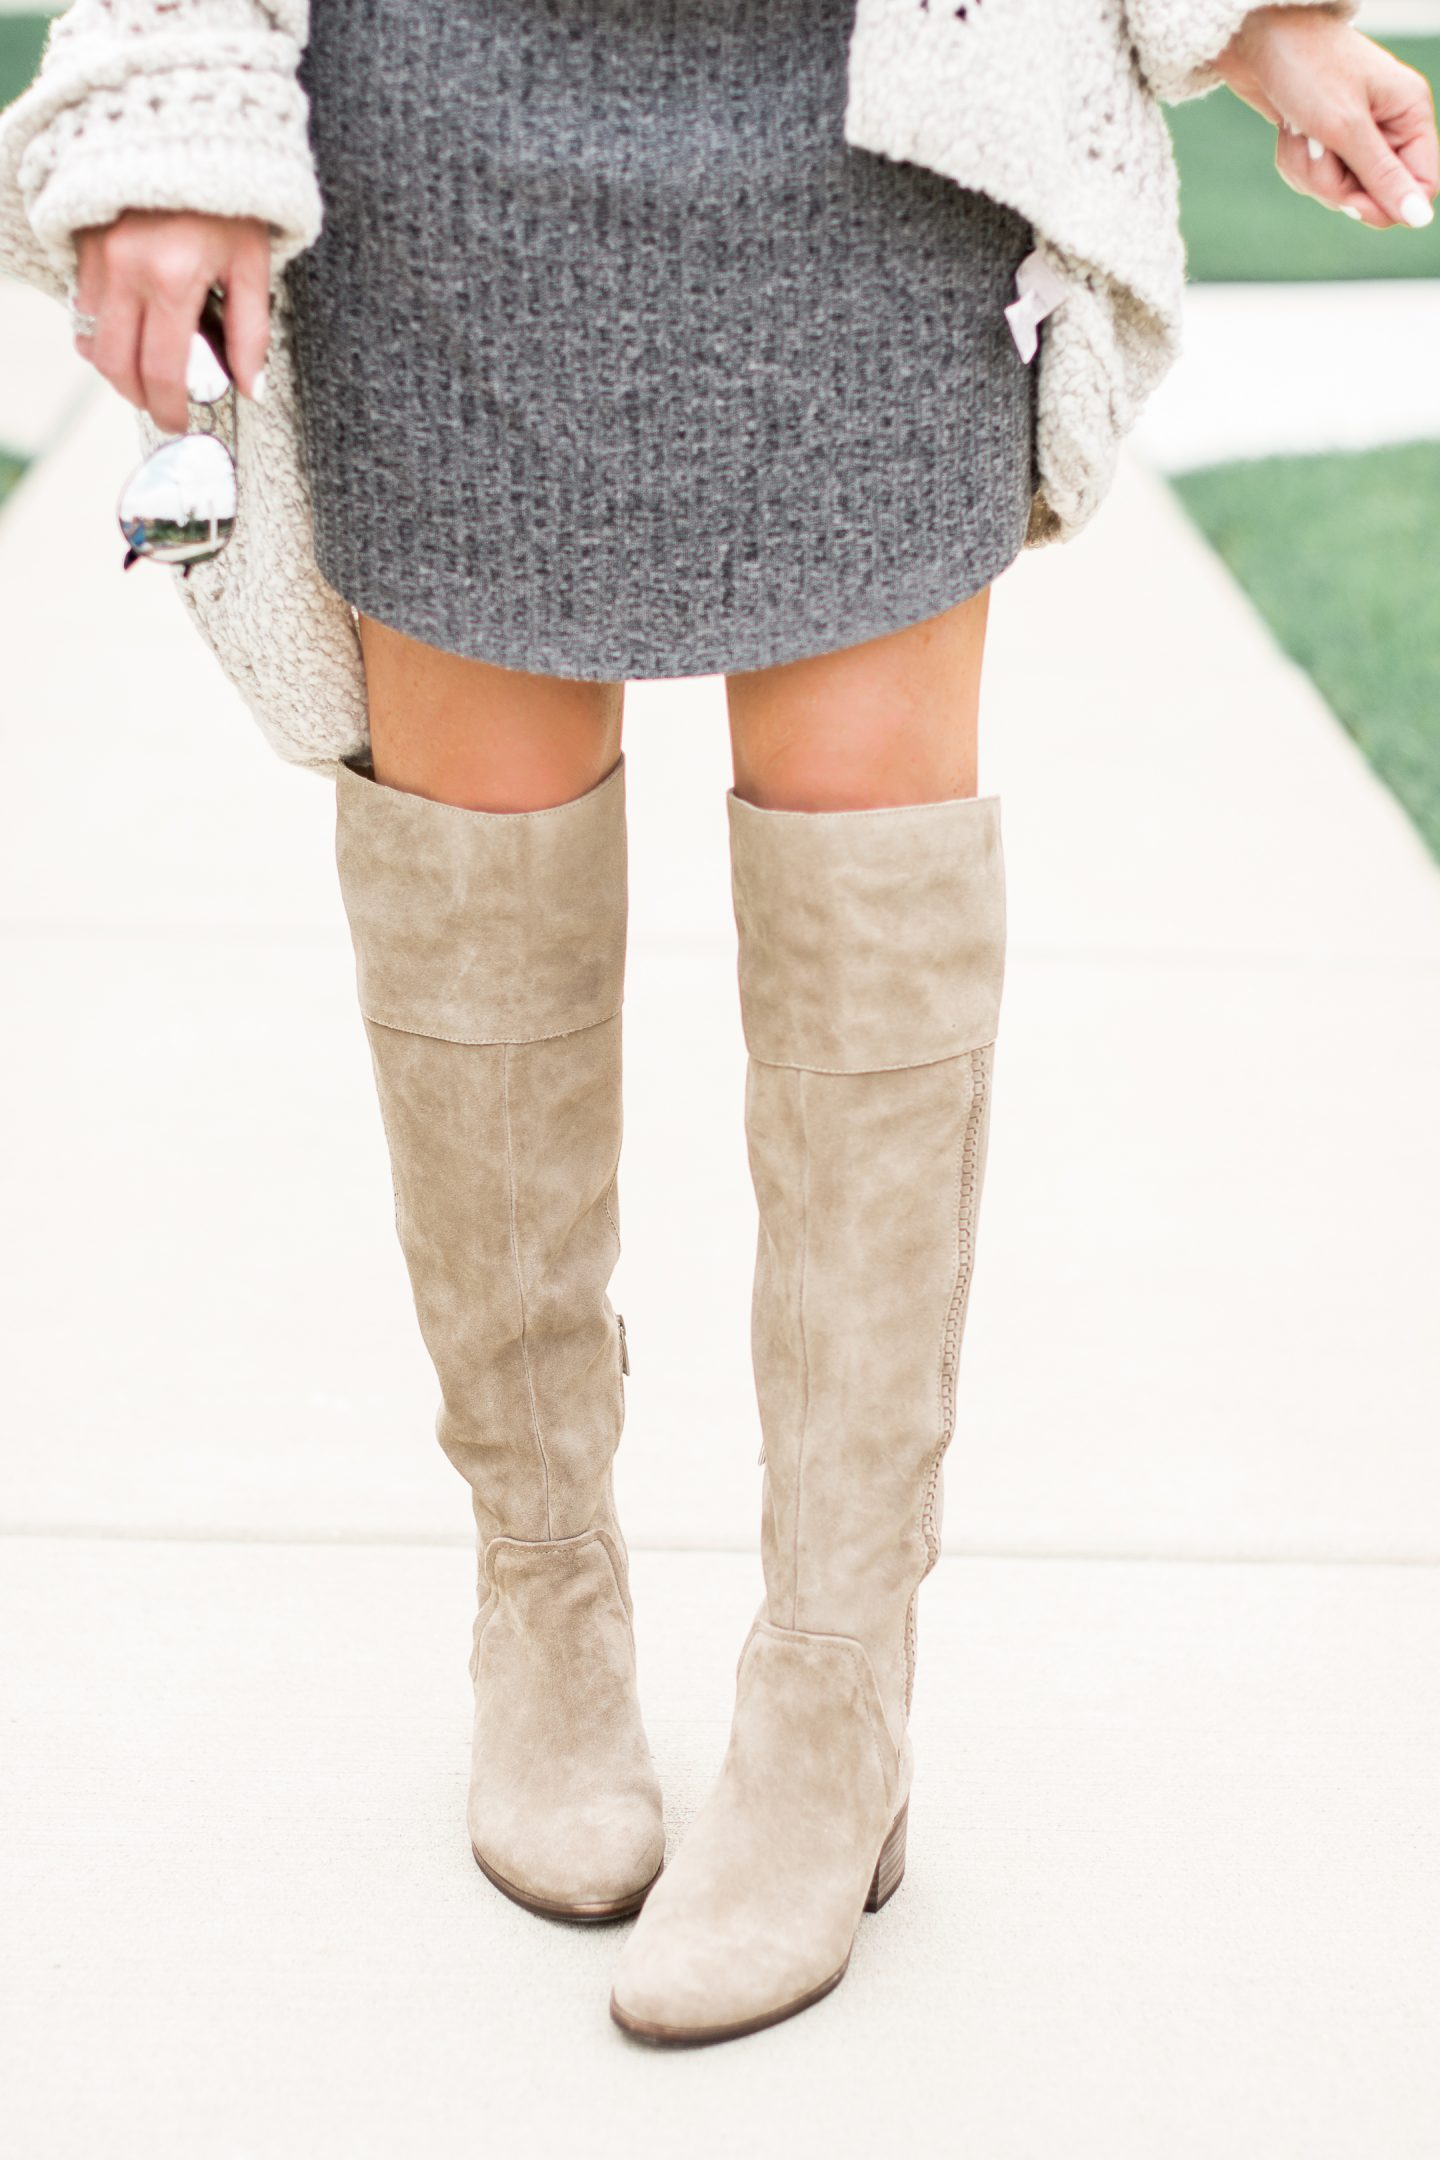 how to wear over the knee boots with a mini dress, mom fashion, outfit ideas for moms, casual chic outfit, mom style